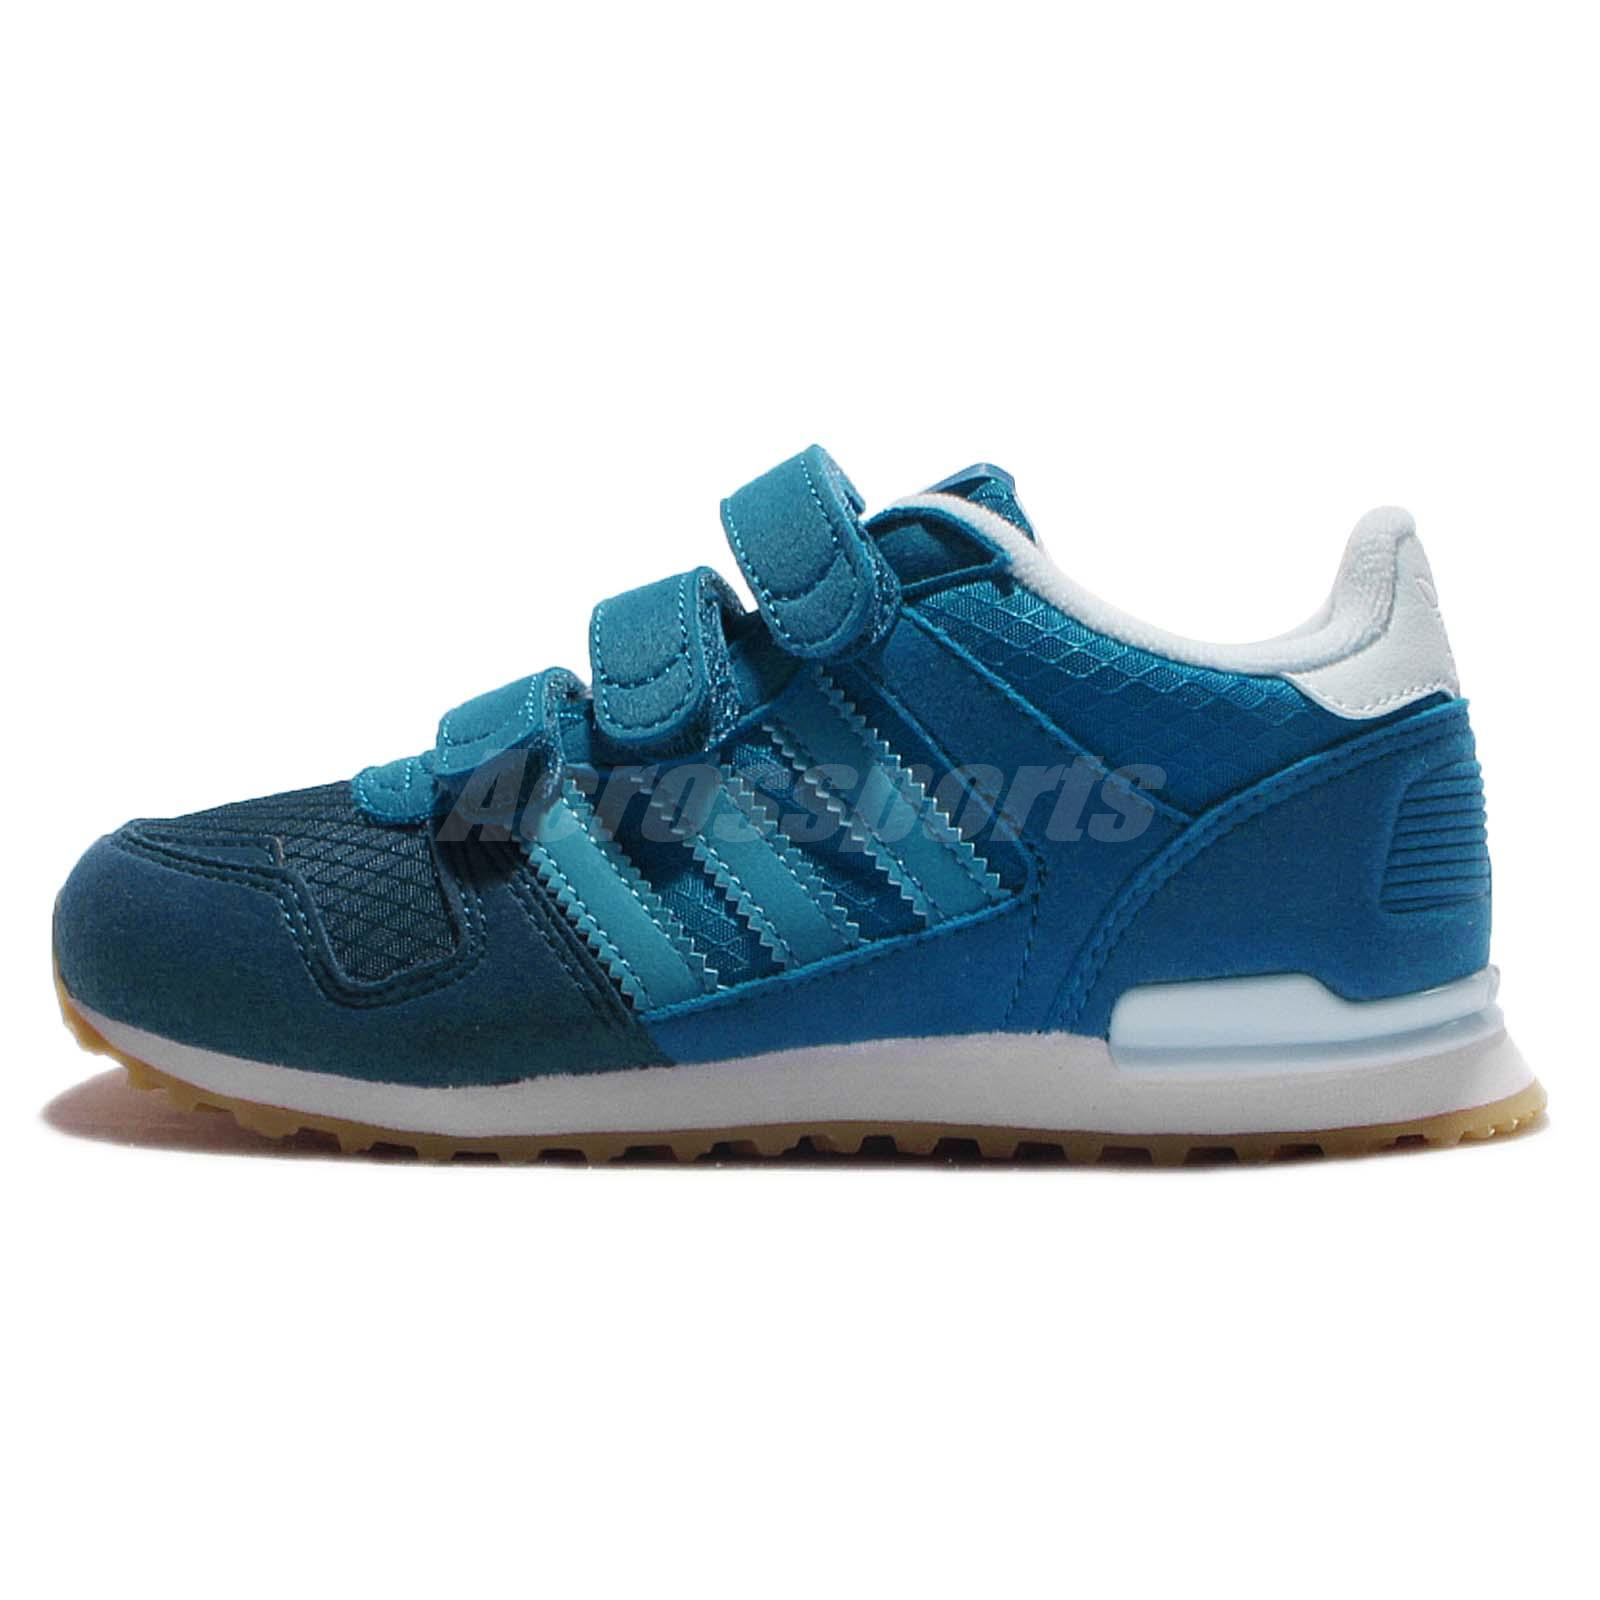 reputable site a354d 63e38 ... best price adidas originals zx 700 cf c suede blue gum kids junior shoes  sneakers s76245